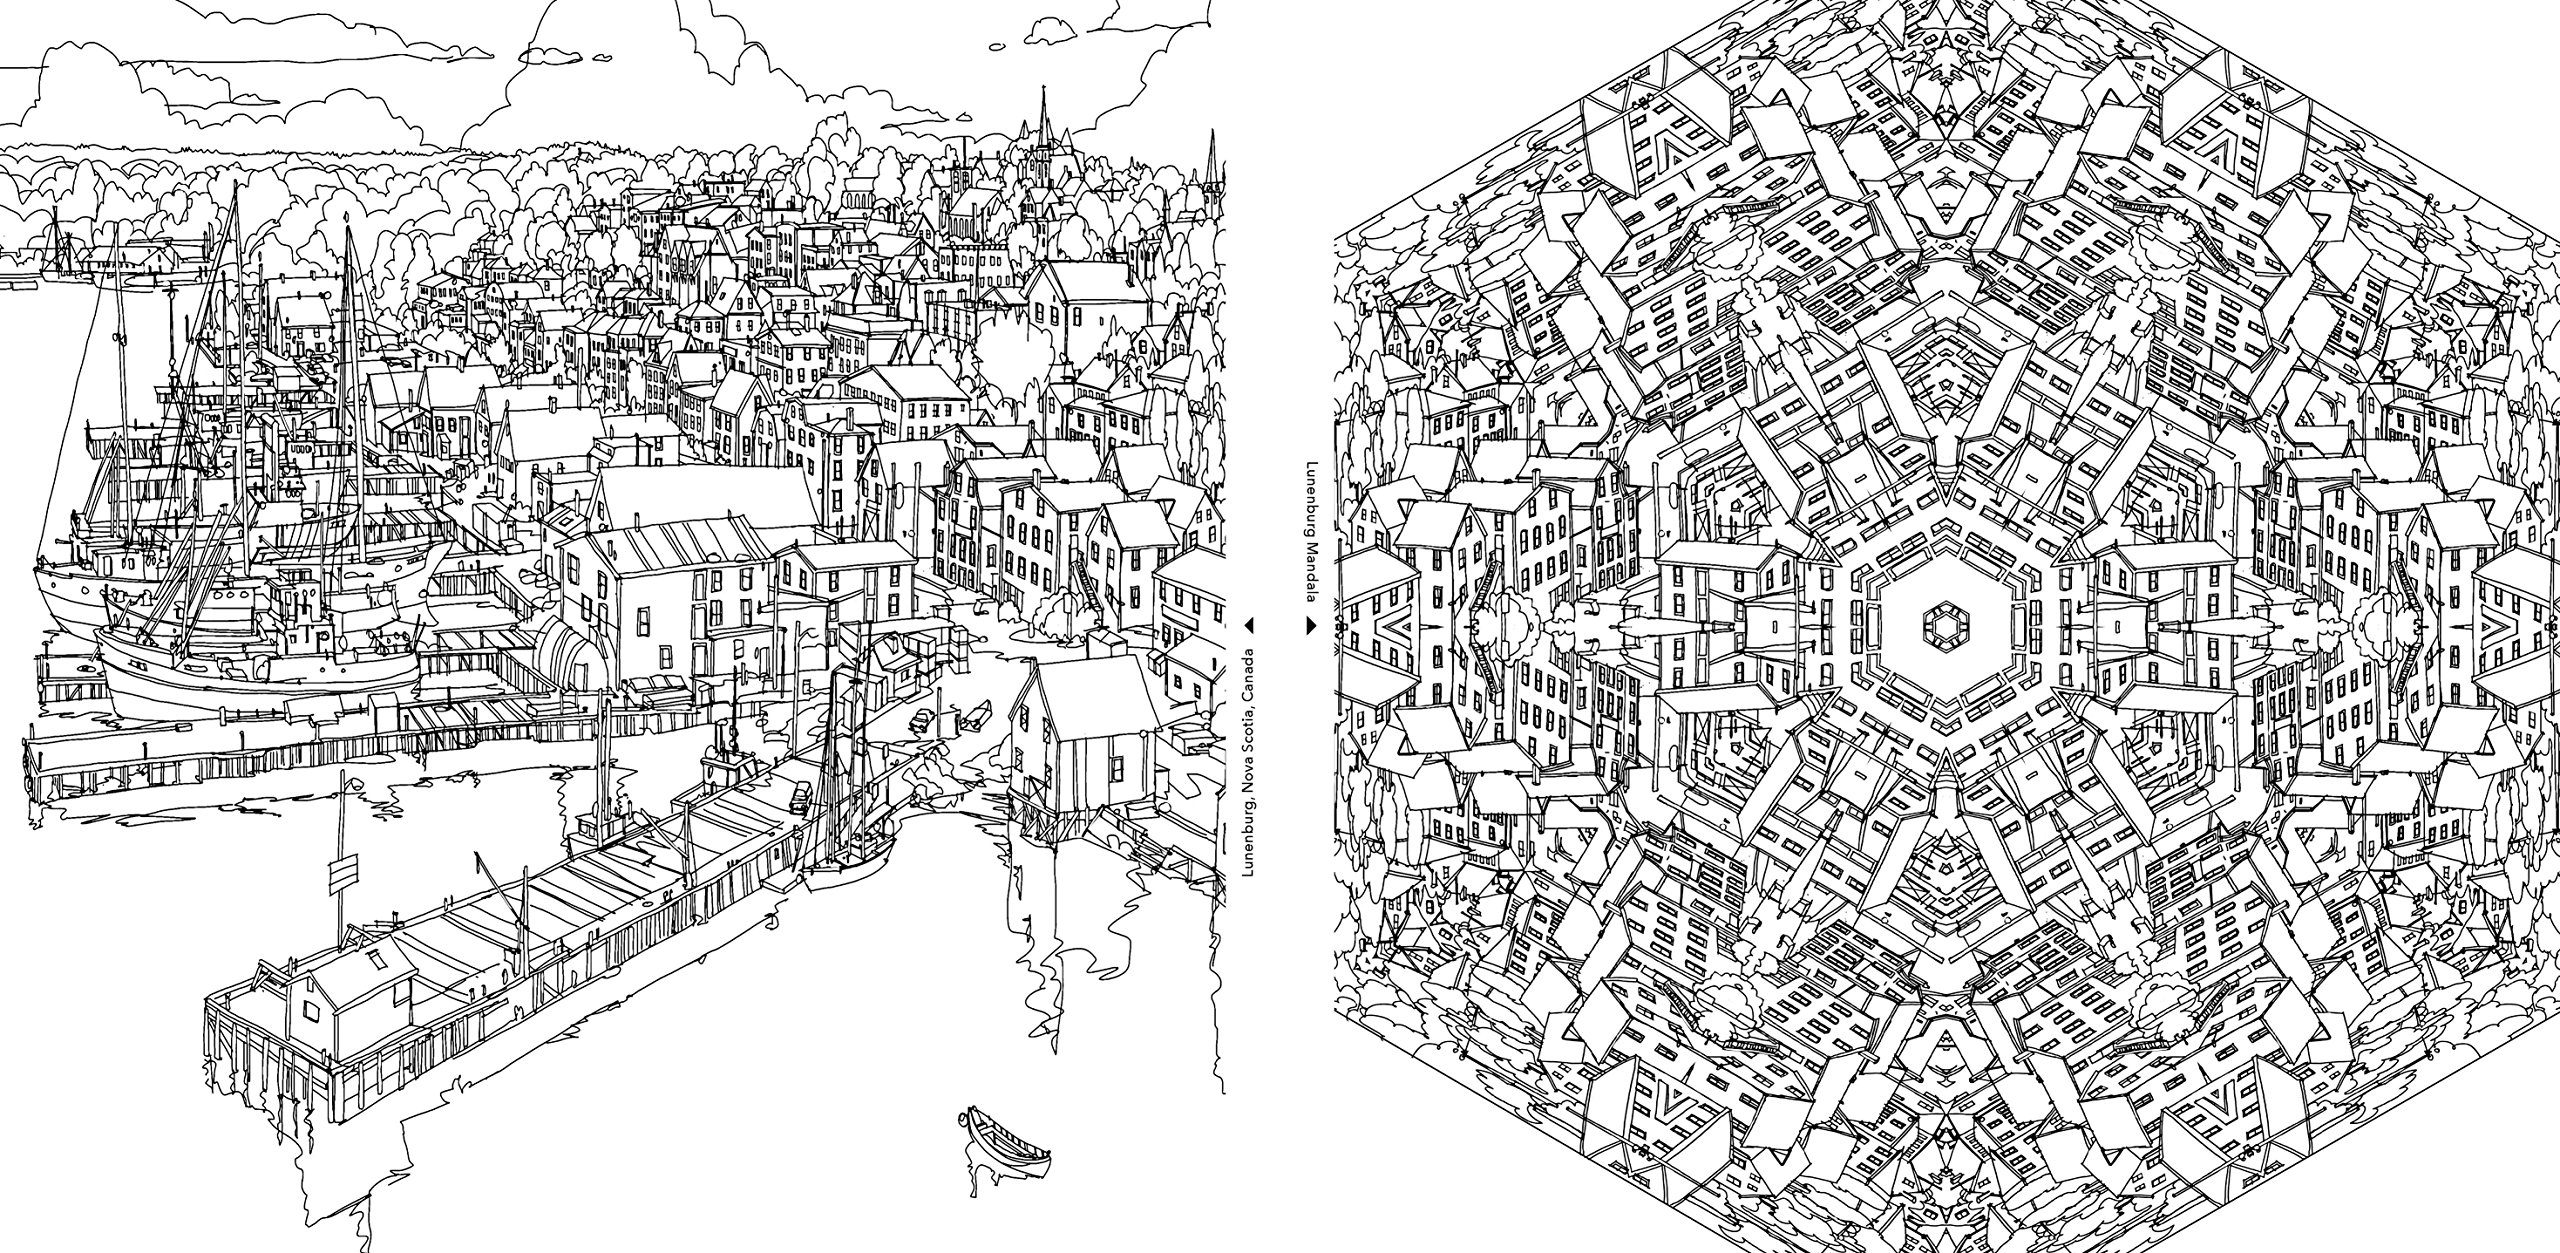 Colouring books for adults vancouver - An Extremely Detailed Coloring Book For Architecture Lovers